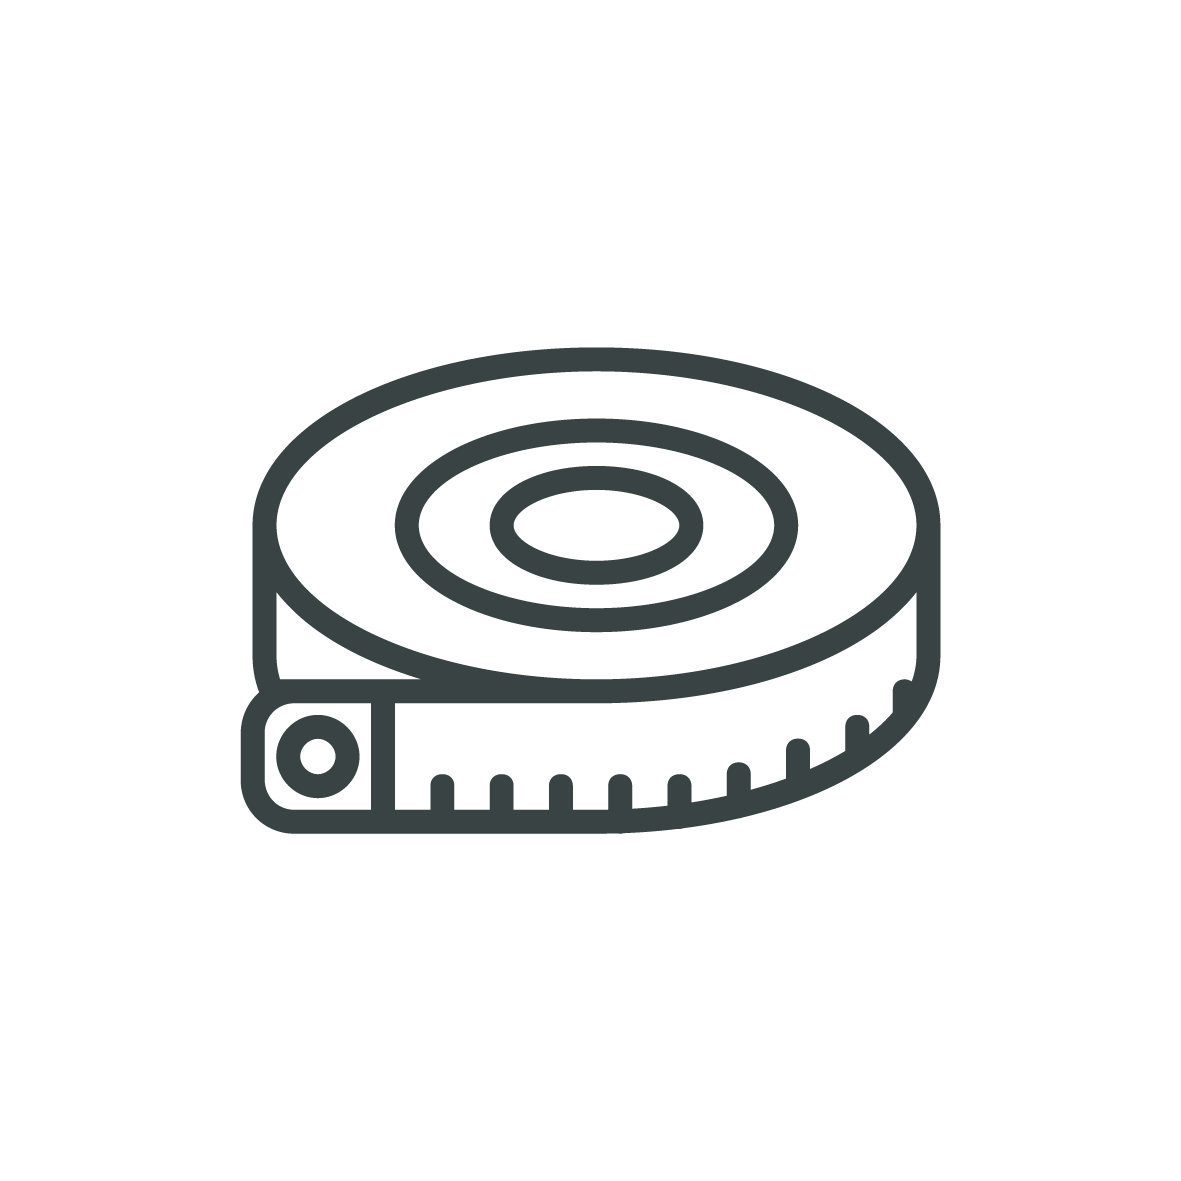 Icons-Grey-01.png